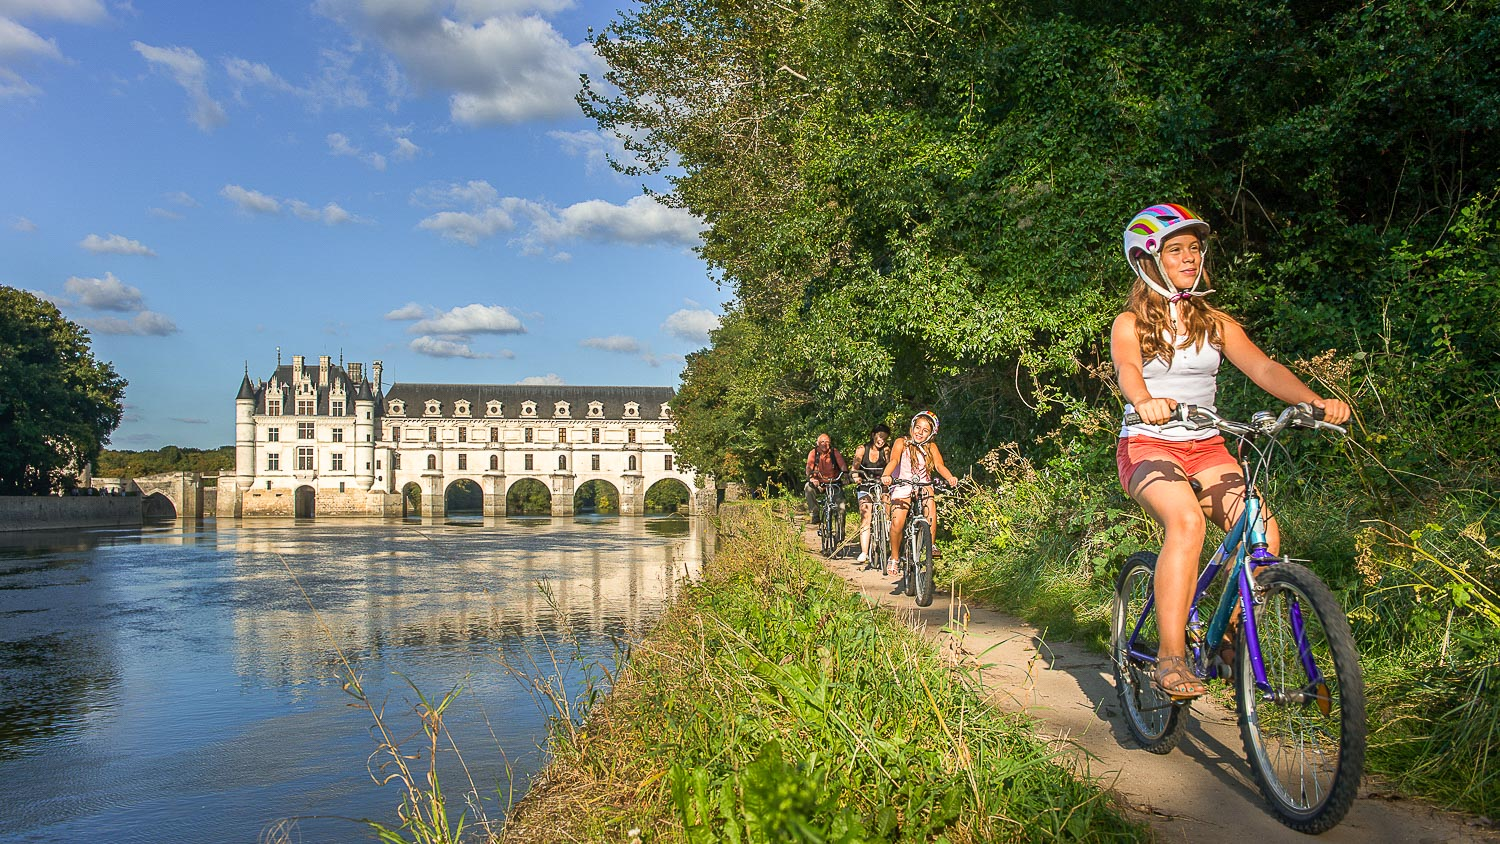 A bike ride around the chateau of Chenonceau